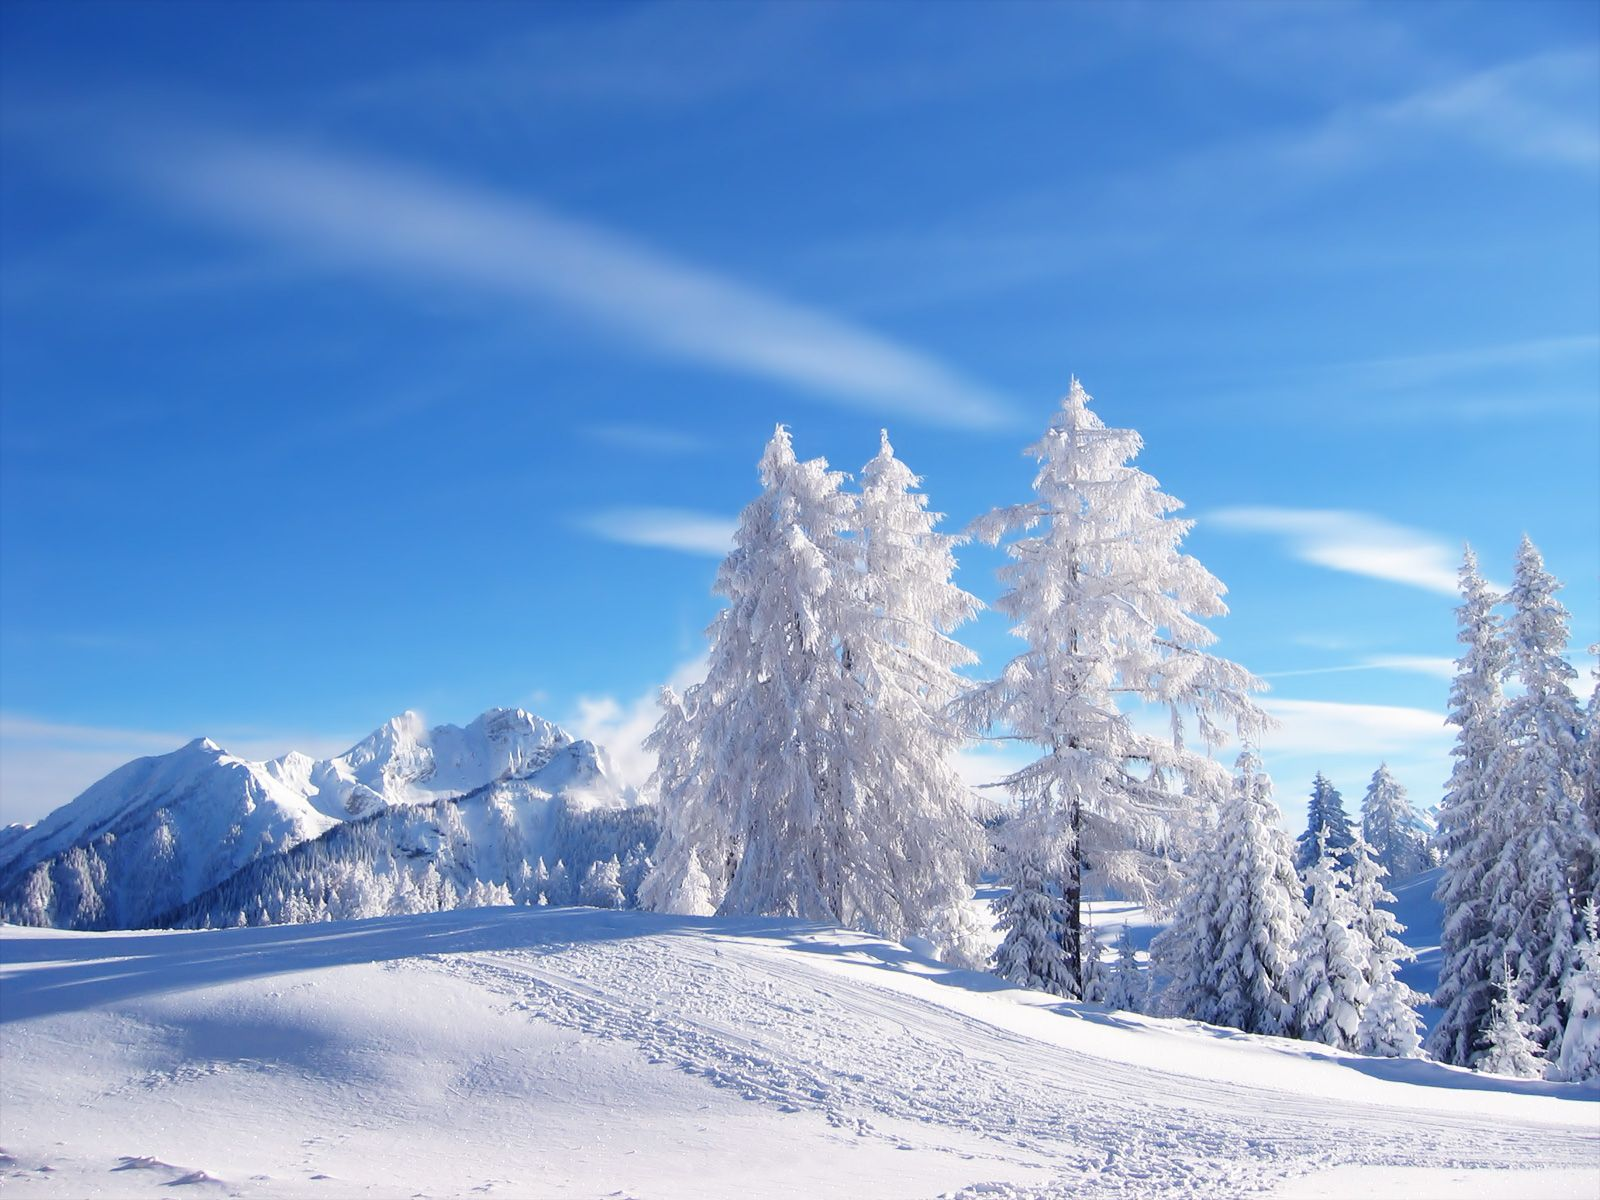 This Is What Narnia Looks Like In My Brain Winter Landscape Winter Nature Winter Wallpaper